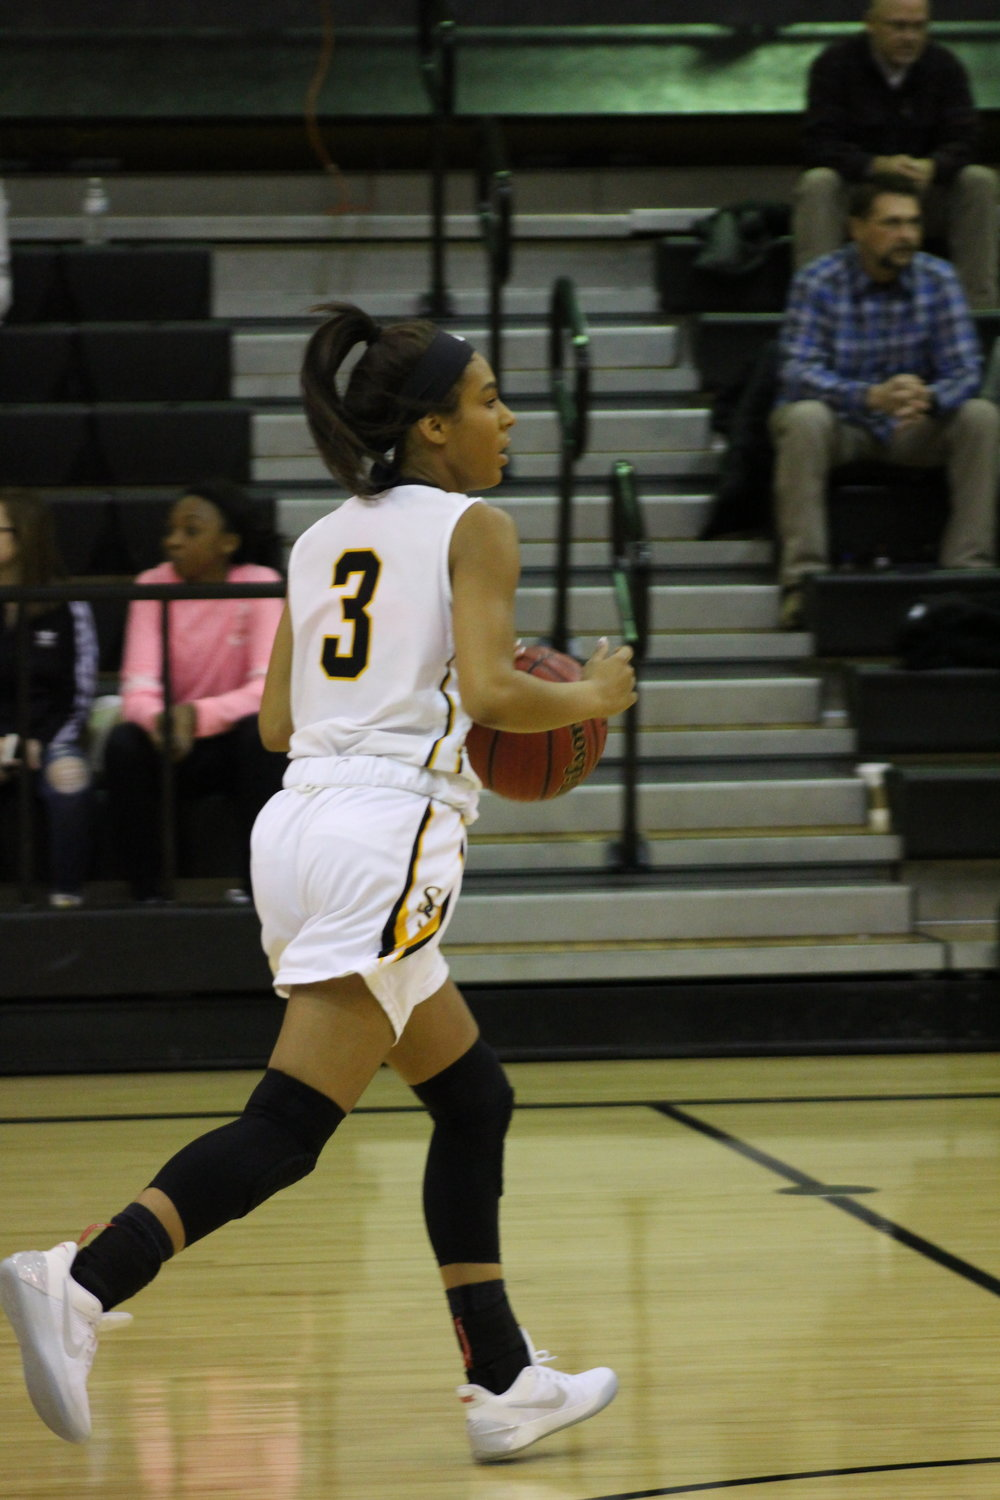 Senior Kierra McGee scored a team-high 16 points for the Sandites in a double-digit victory over Bixby. (Photo: Morgan Miller).